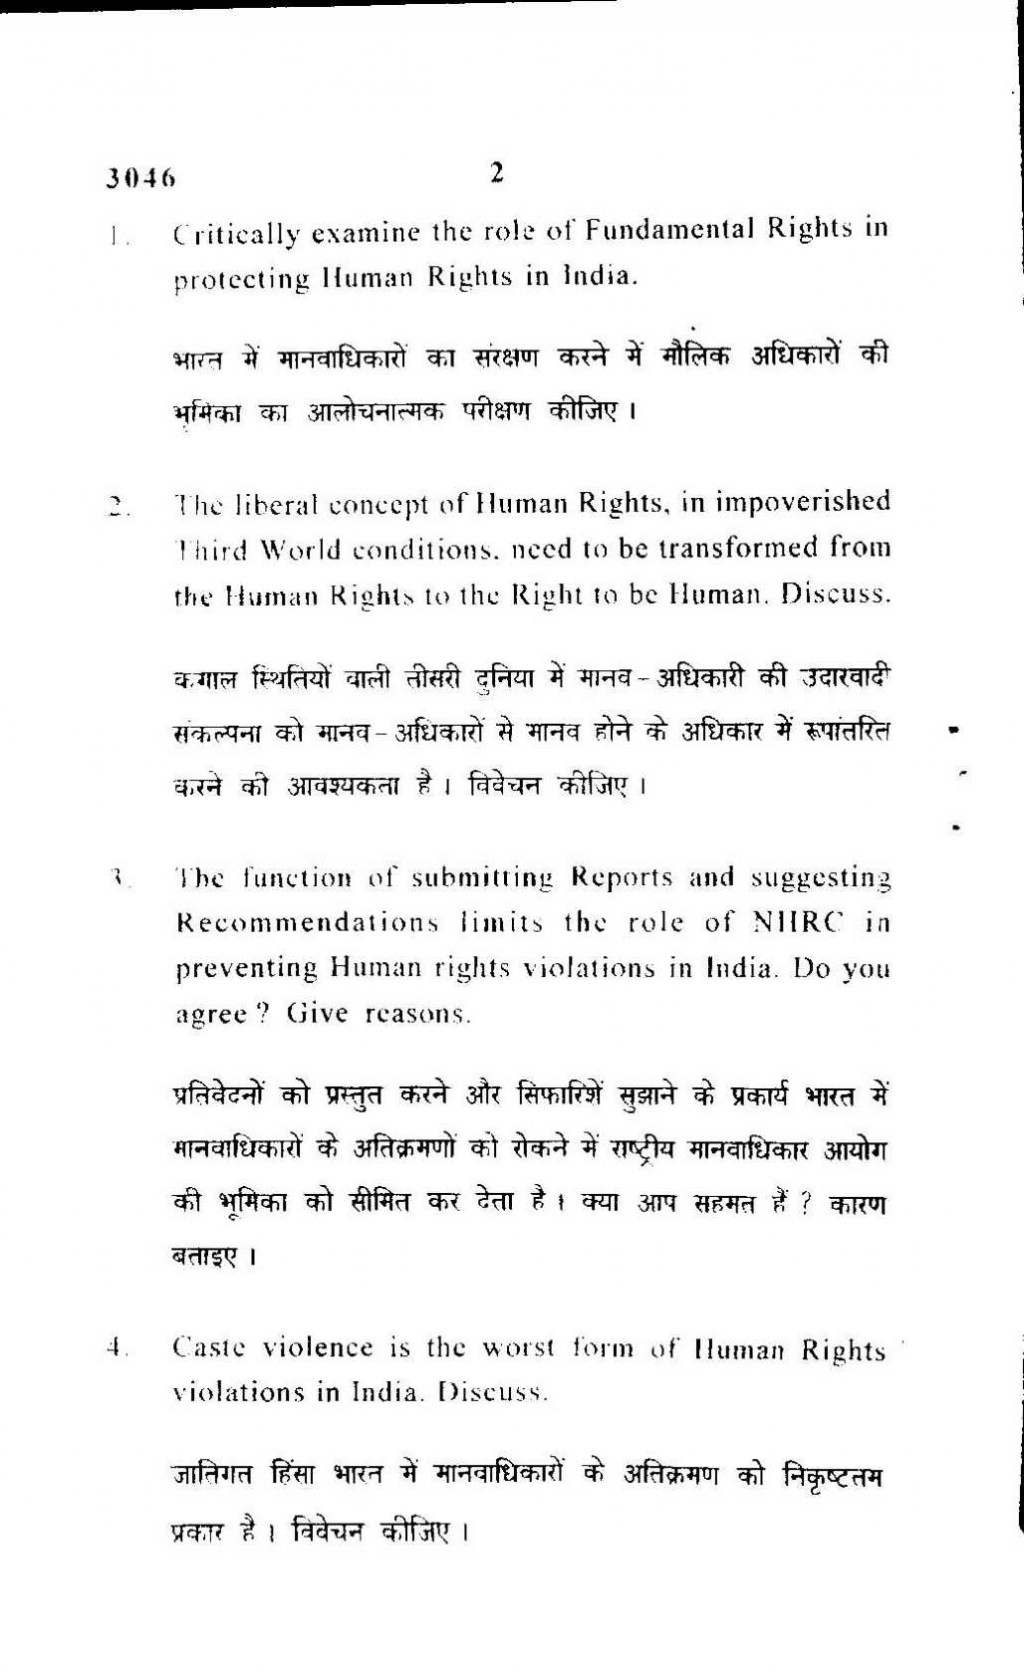 009 Previous Question Papers For Ma Political Science Delhi University Essay Topics Stirring Party Questions Argumentative Geography Paper Large